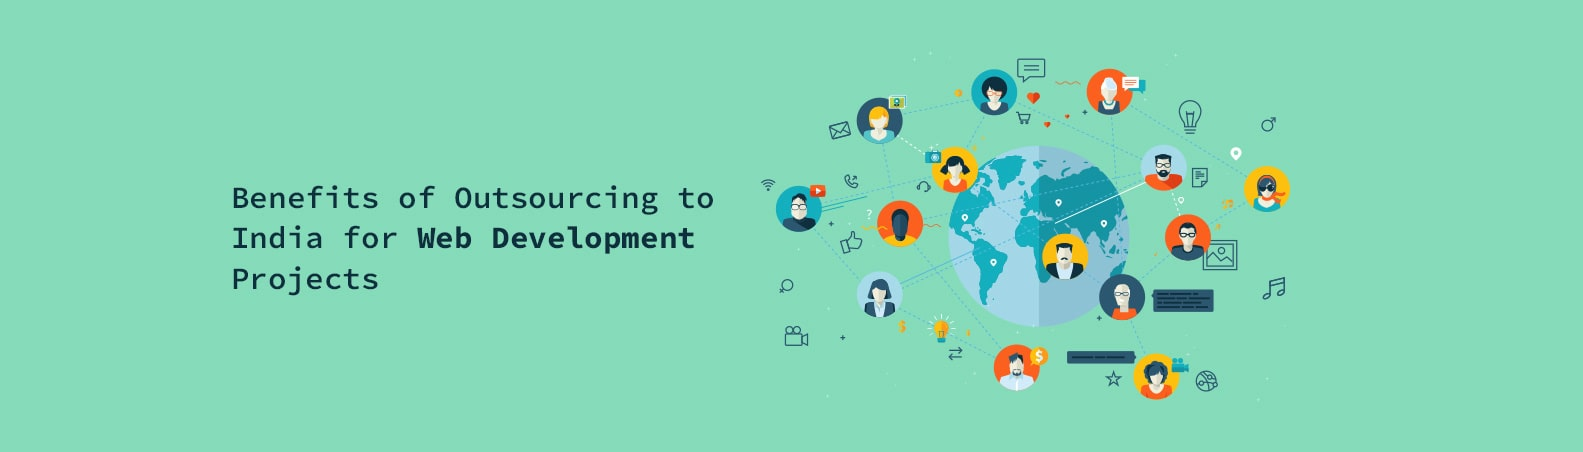 Benefits of Outsourcing to India for Web Development Projects